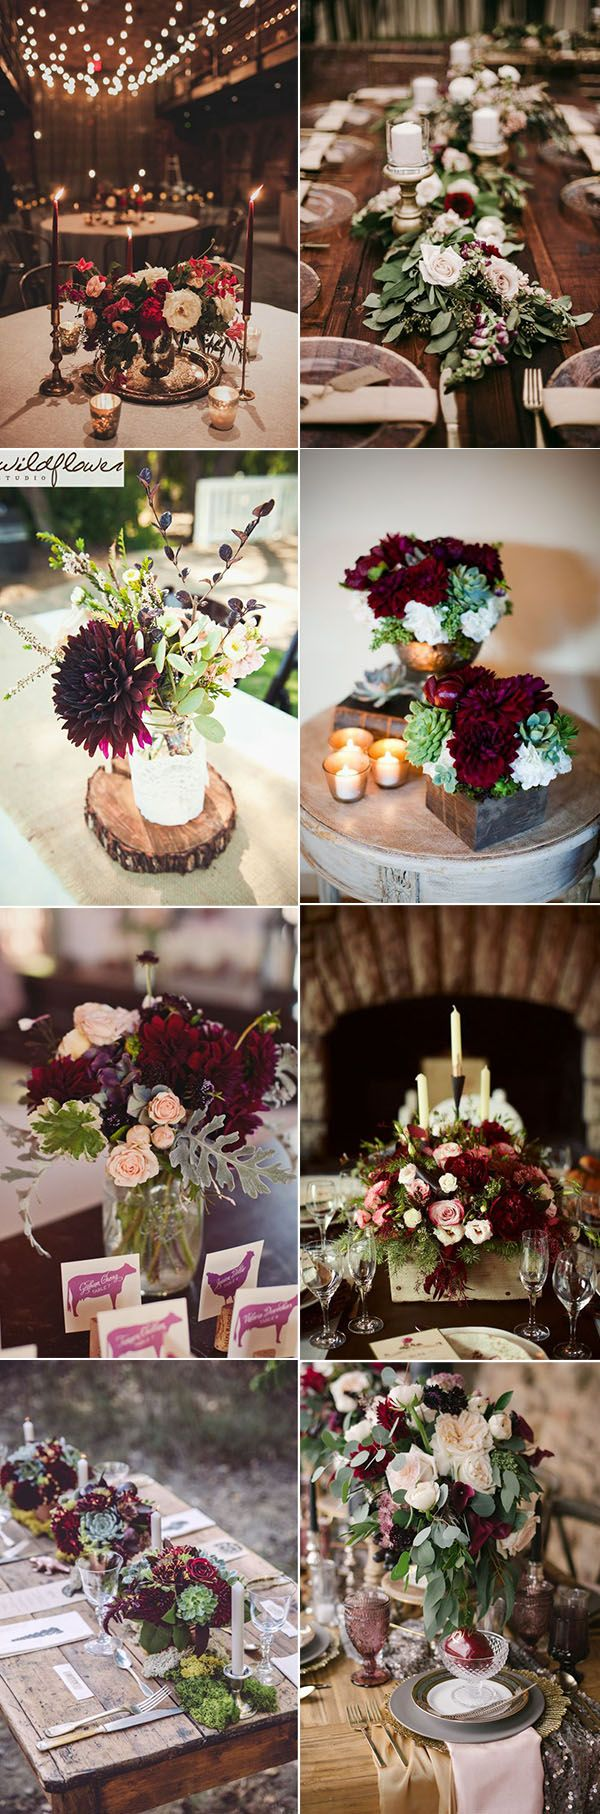 50 refined burgundy and marsala wedding color ideas for fall brides beautiful burgundy wedding centerpieces ideas for any wedding themes junglespirit Gallery